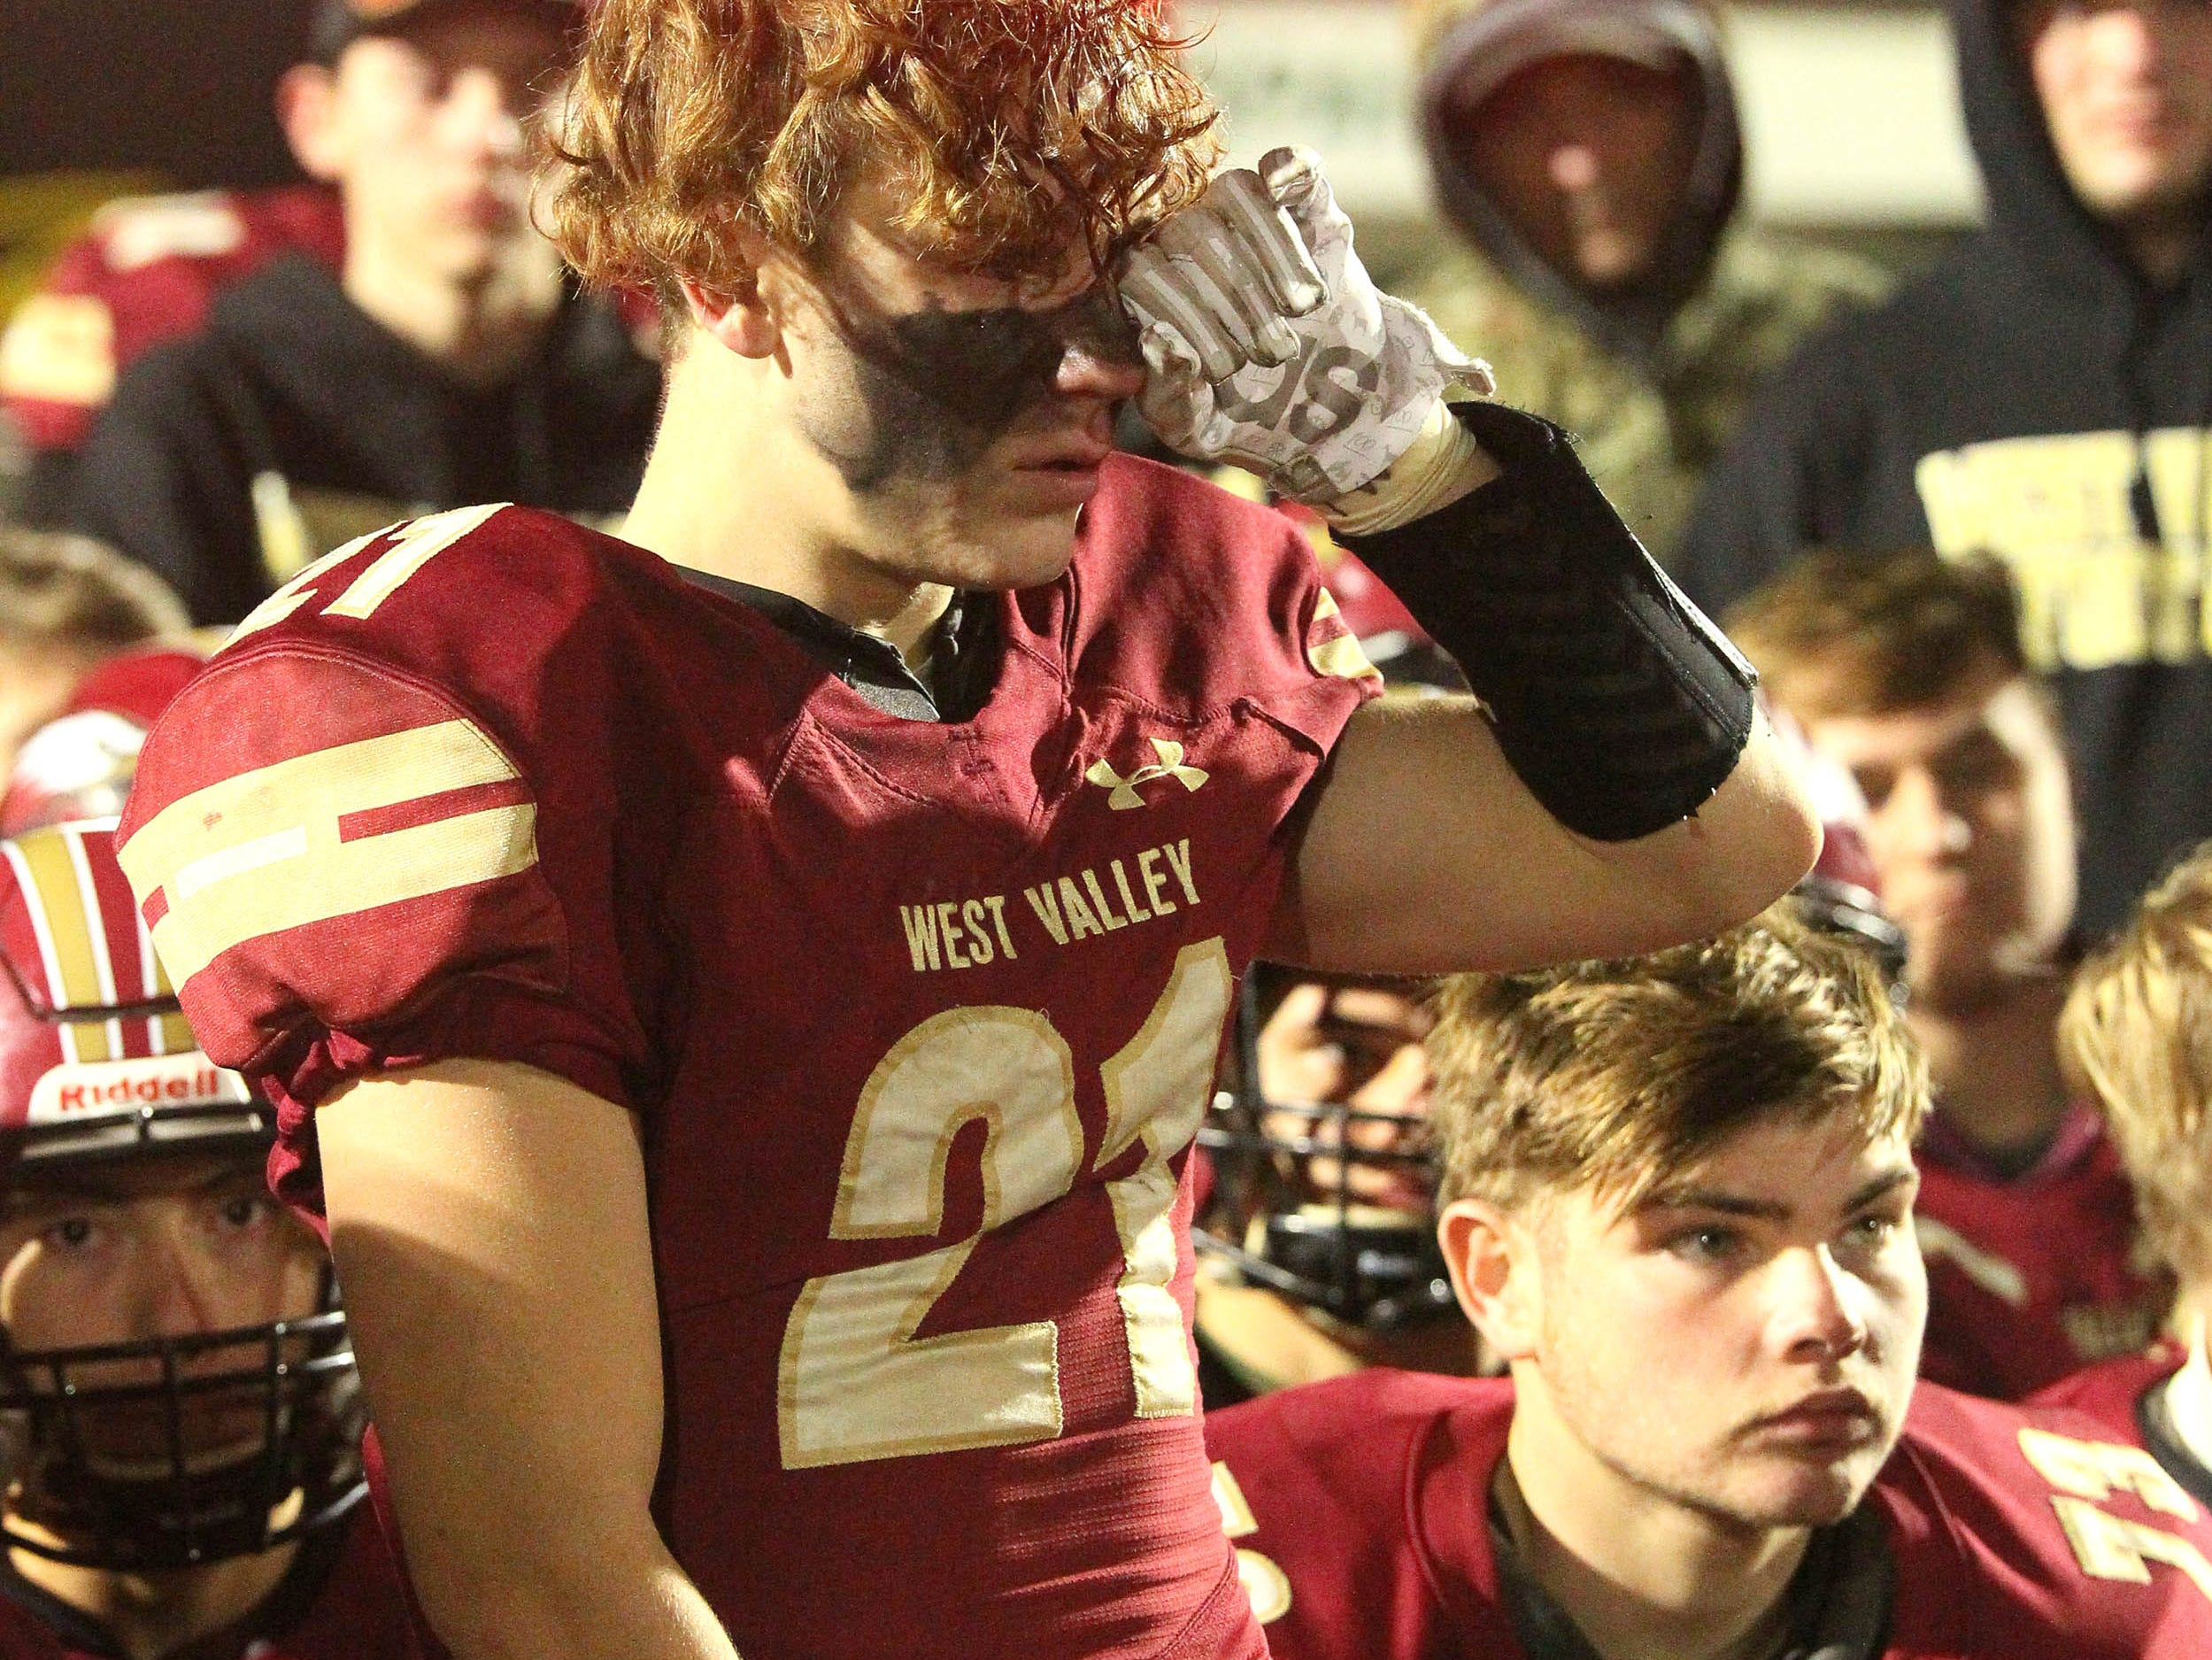 West Valley's Myles Gibbons (21) listens to coach on the field after West Valley lost to Rio Linda.   Rio Linda beat the Eagles, 21-13, to take the NorCal regional title for Division 5-AA in Red Bluff on Friday, Dec. 7.